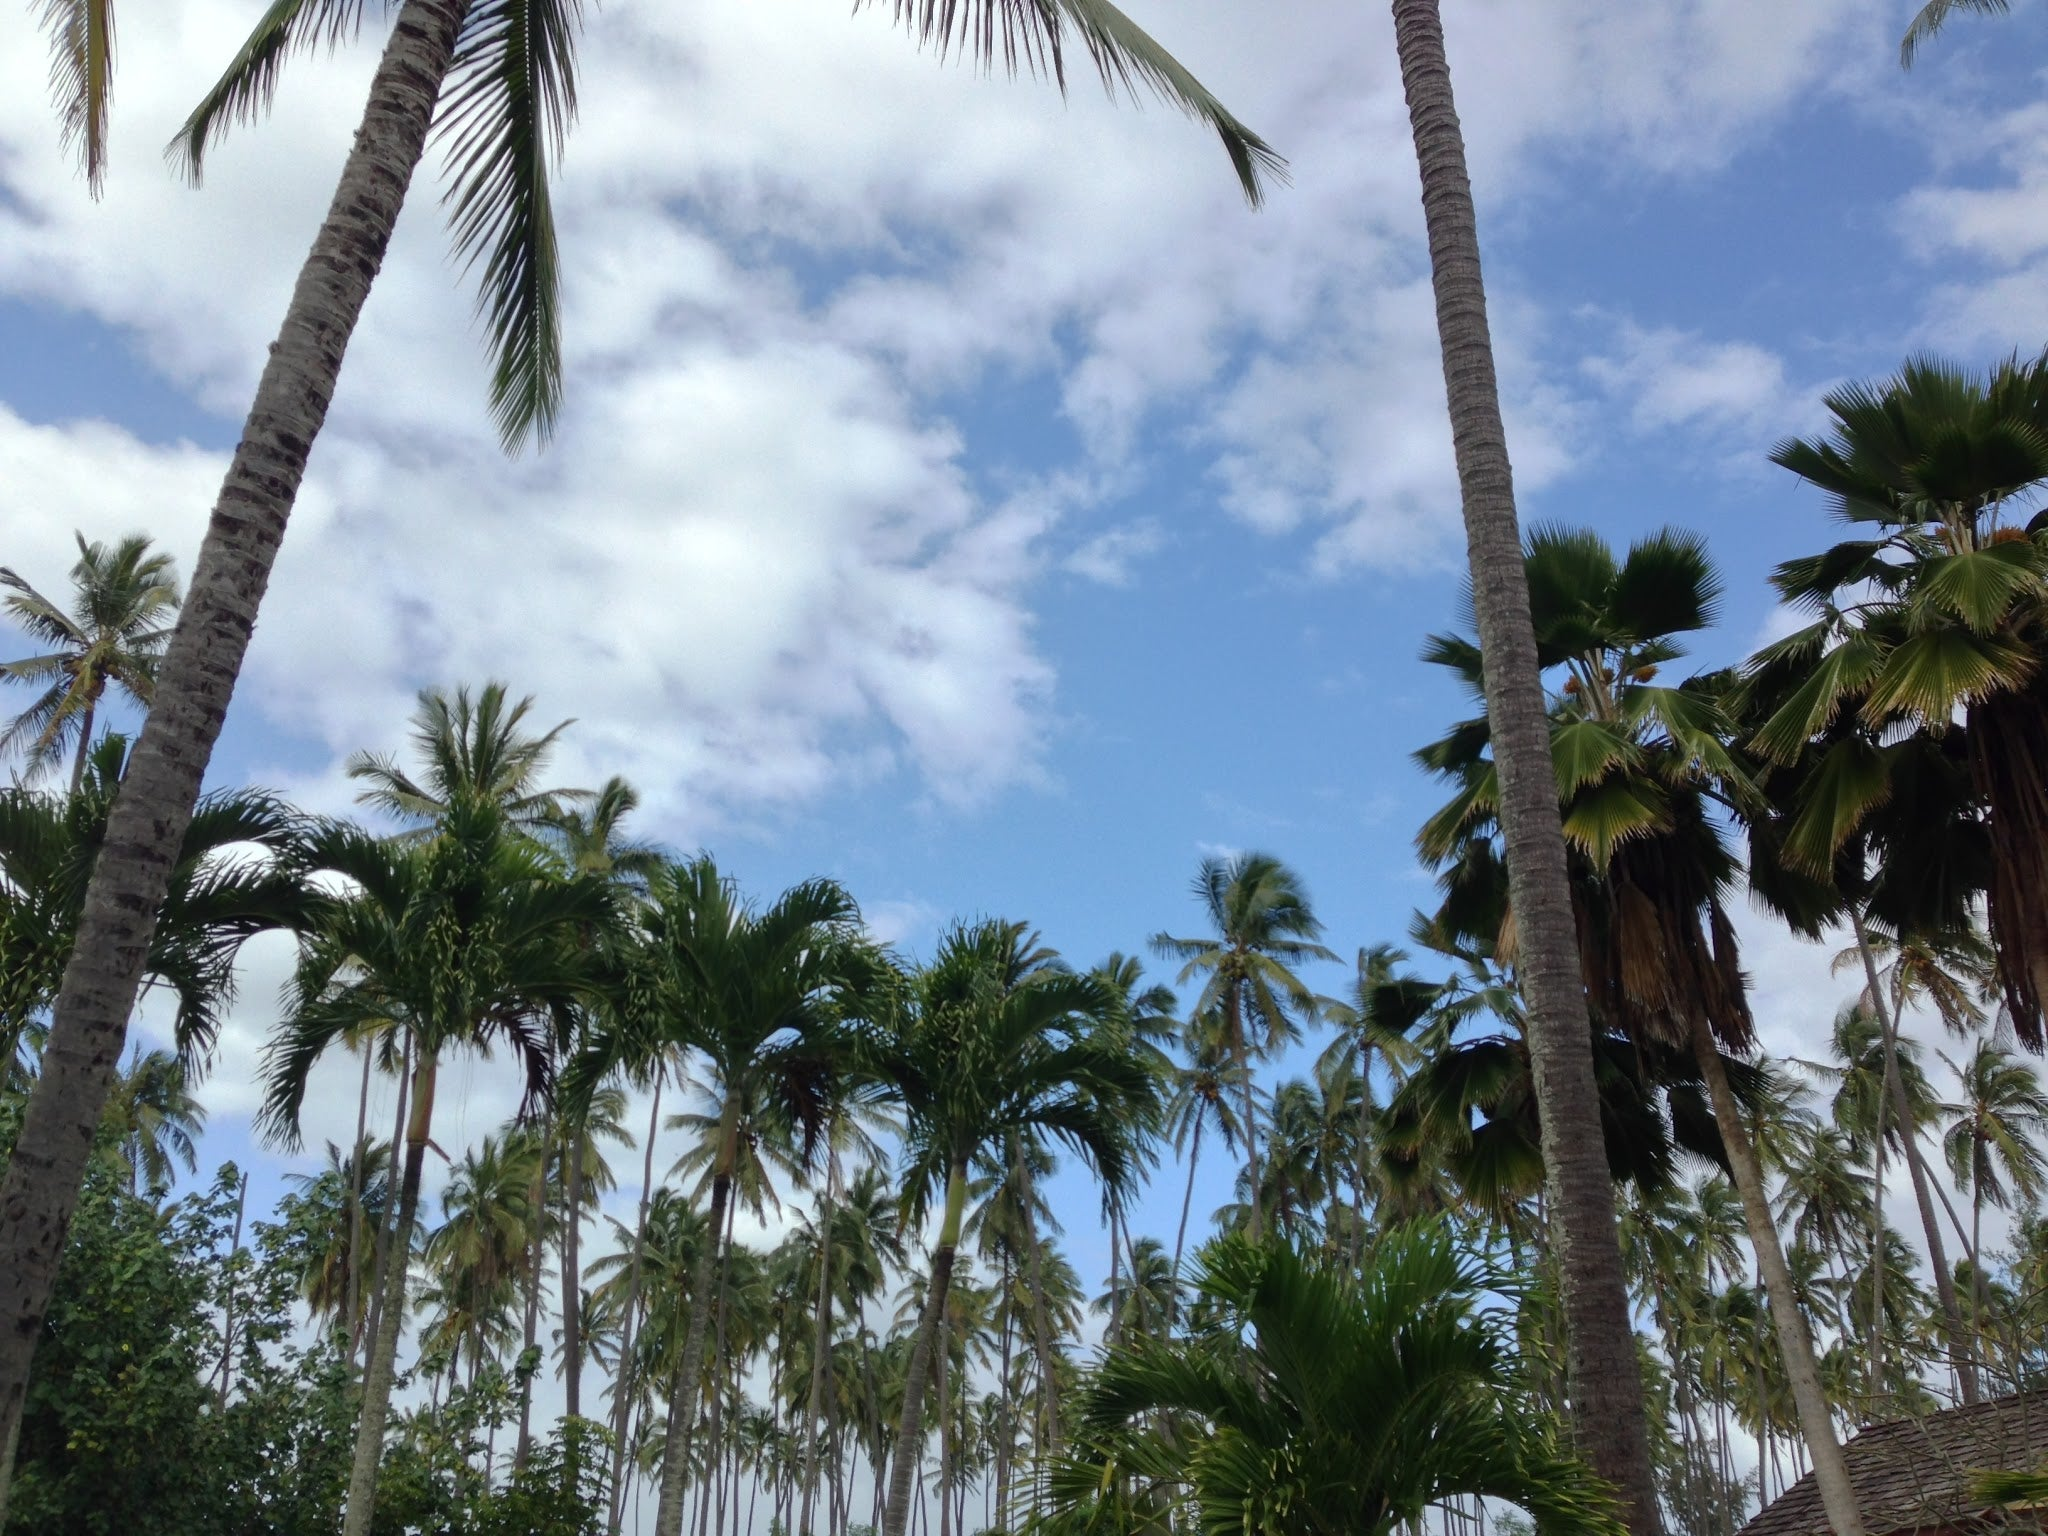 Palm trees across blue skies in Lihue, Hawaii